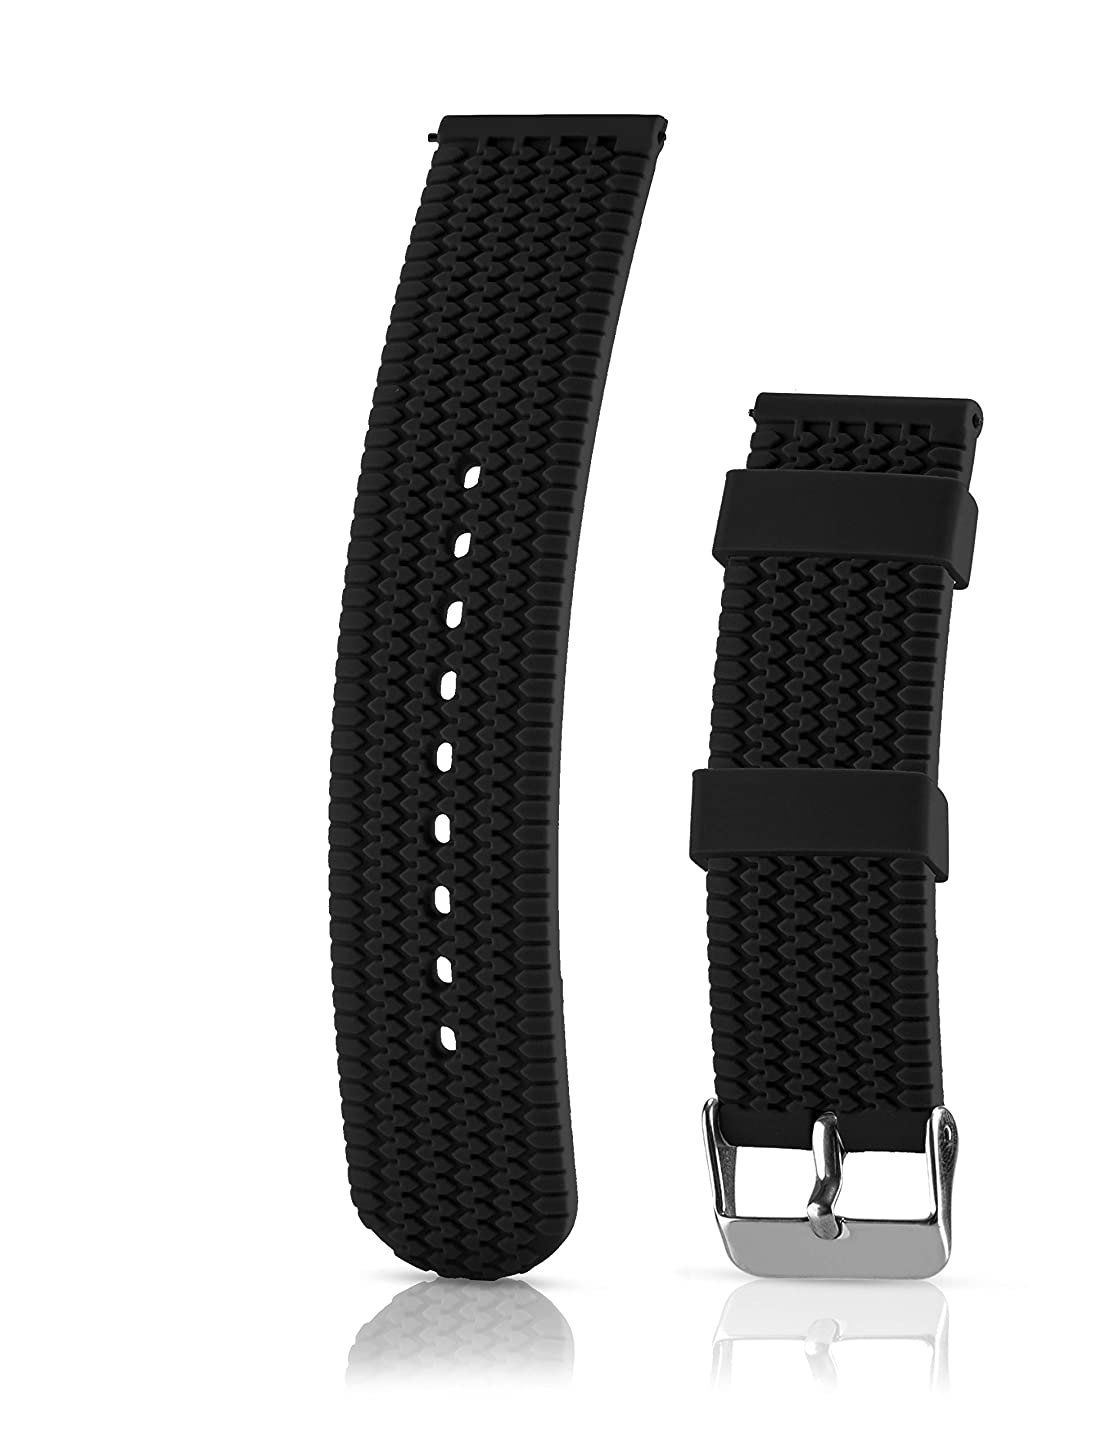 Silicone Replacement Watch Band - Quick Release Soft Rubber Strap - Waterproof, Textured Tire Pattern